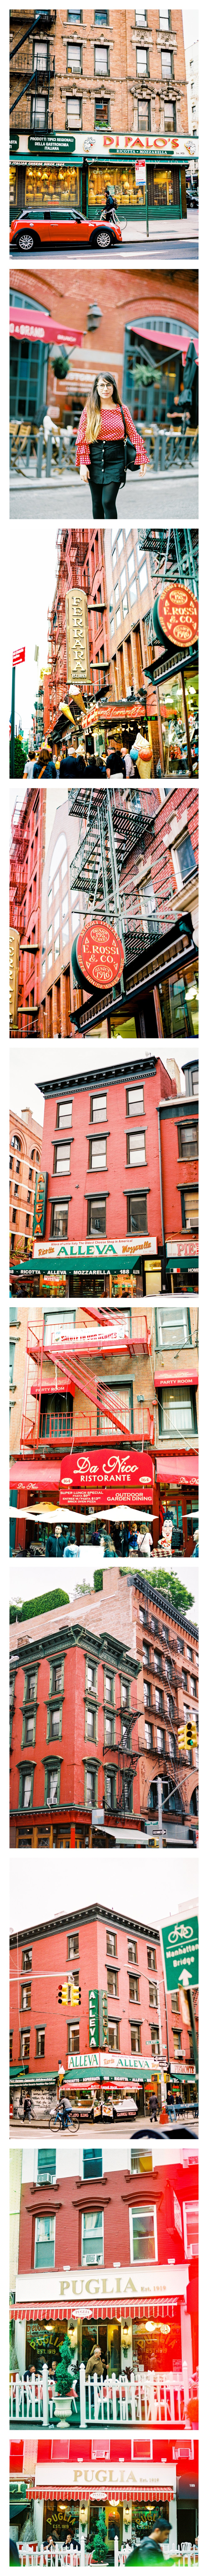 tribeca-little-italy-manhattan-new-york-nyc-travel-photographer-photos